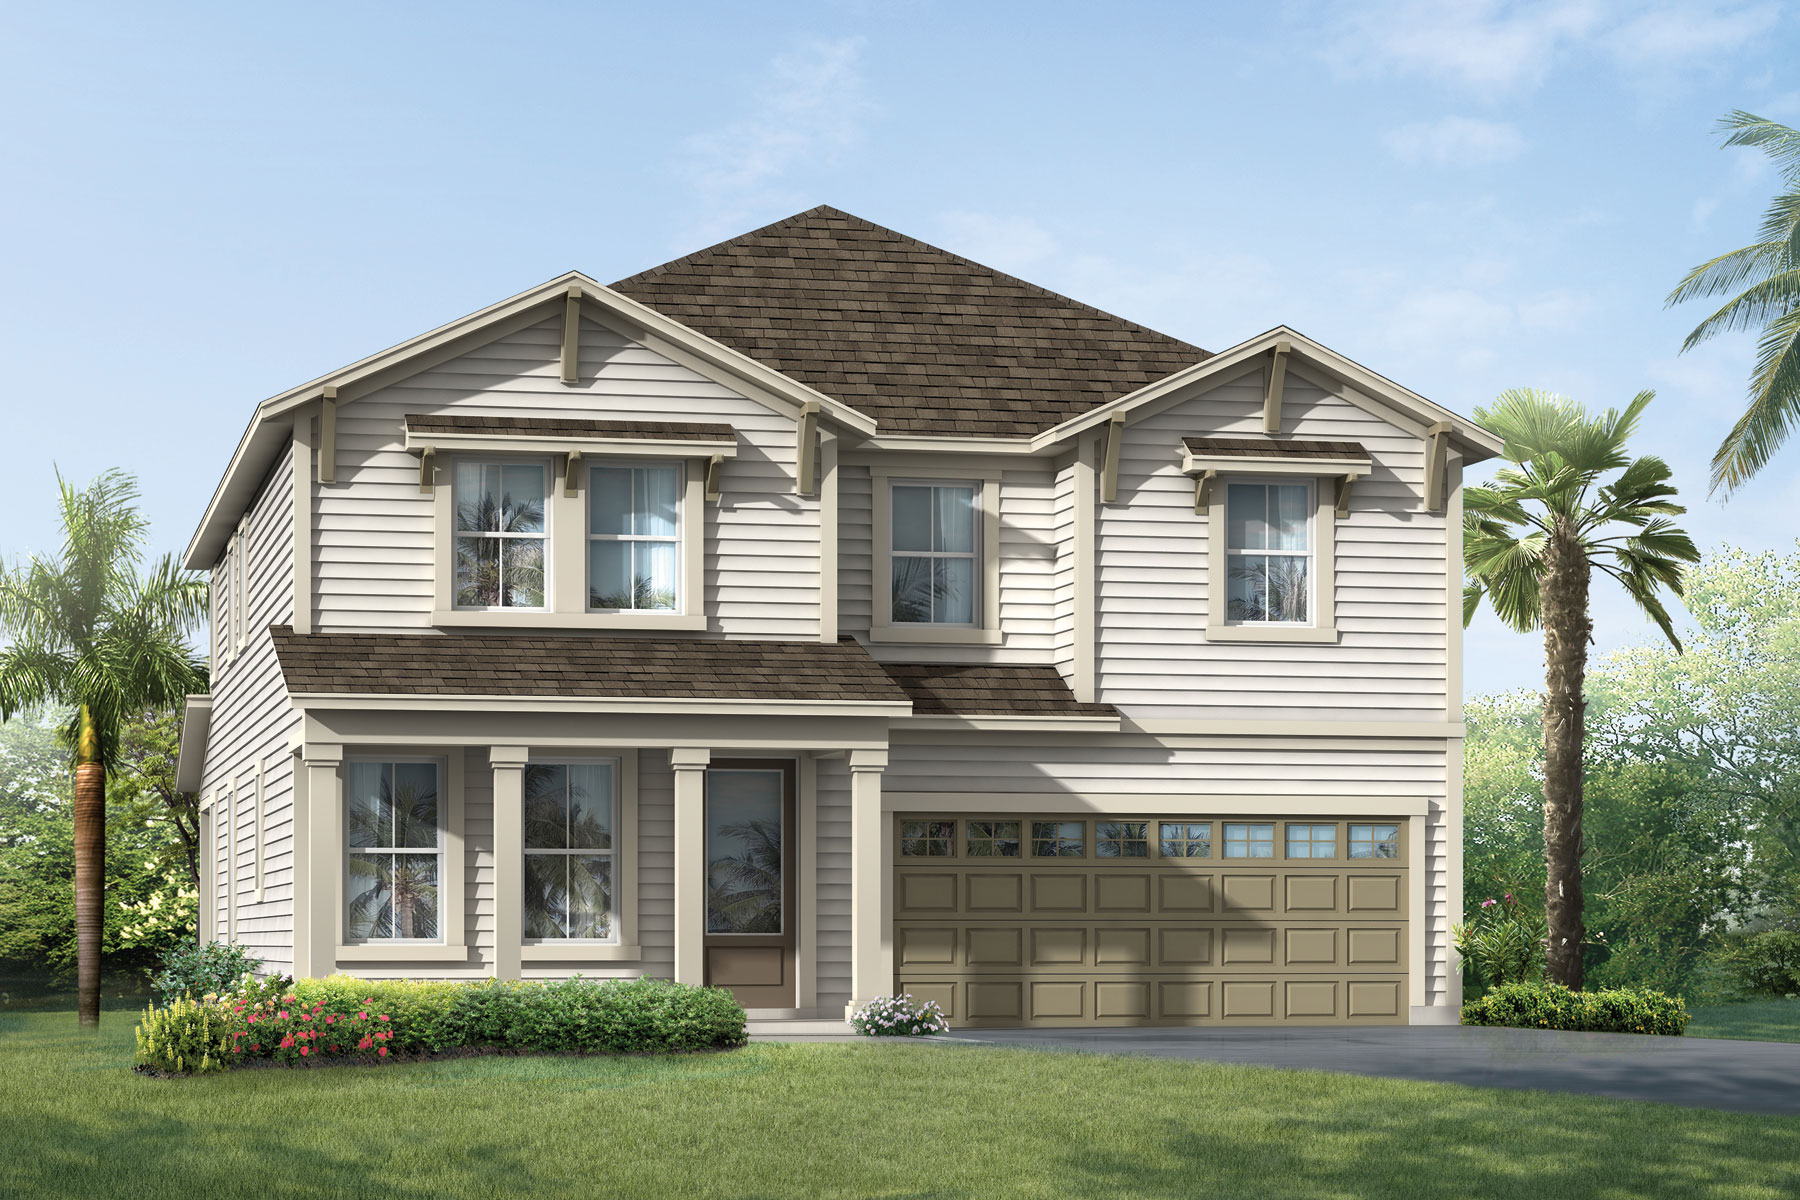 Vireo Plan ElevationLowCountry_RiverTown_Vireo at RiverTown - Arbors in St. Johns Florida by Mattamy Homes